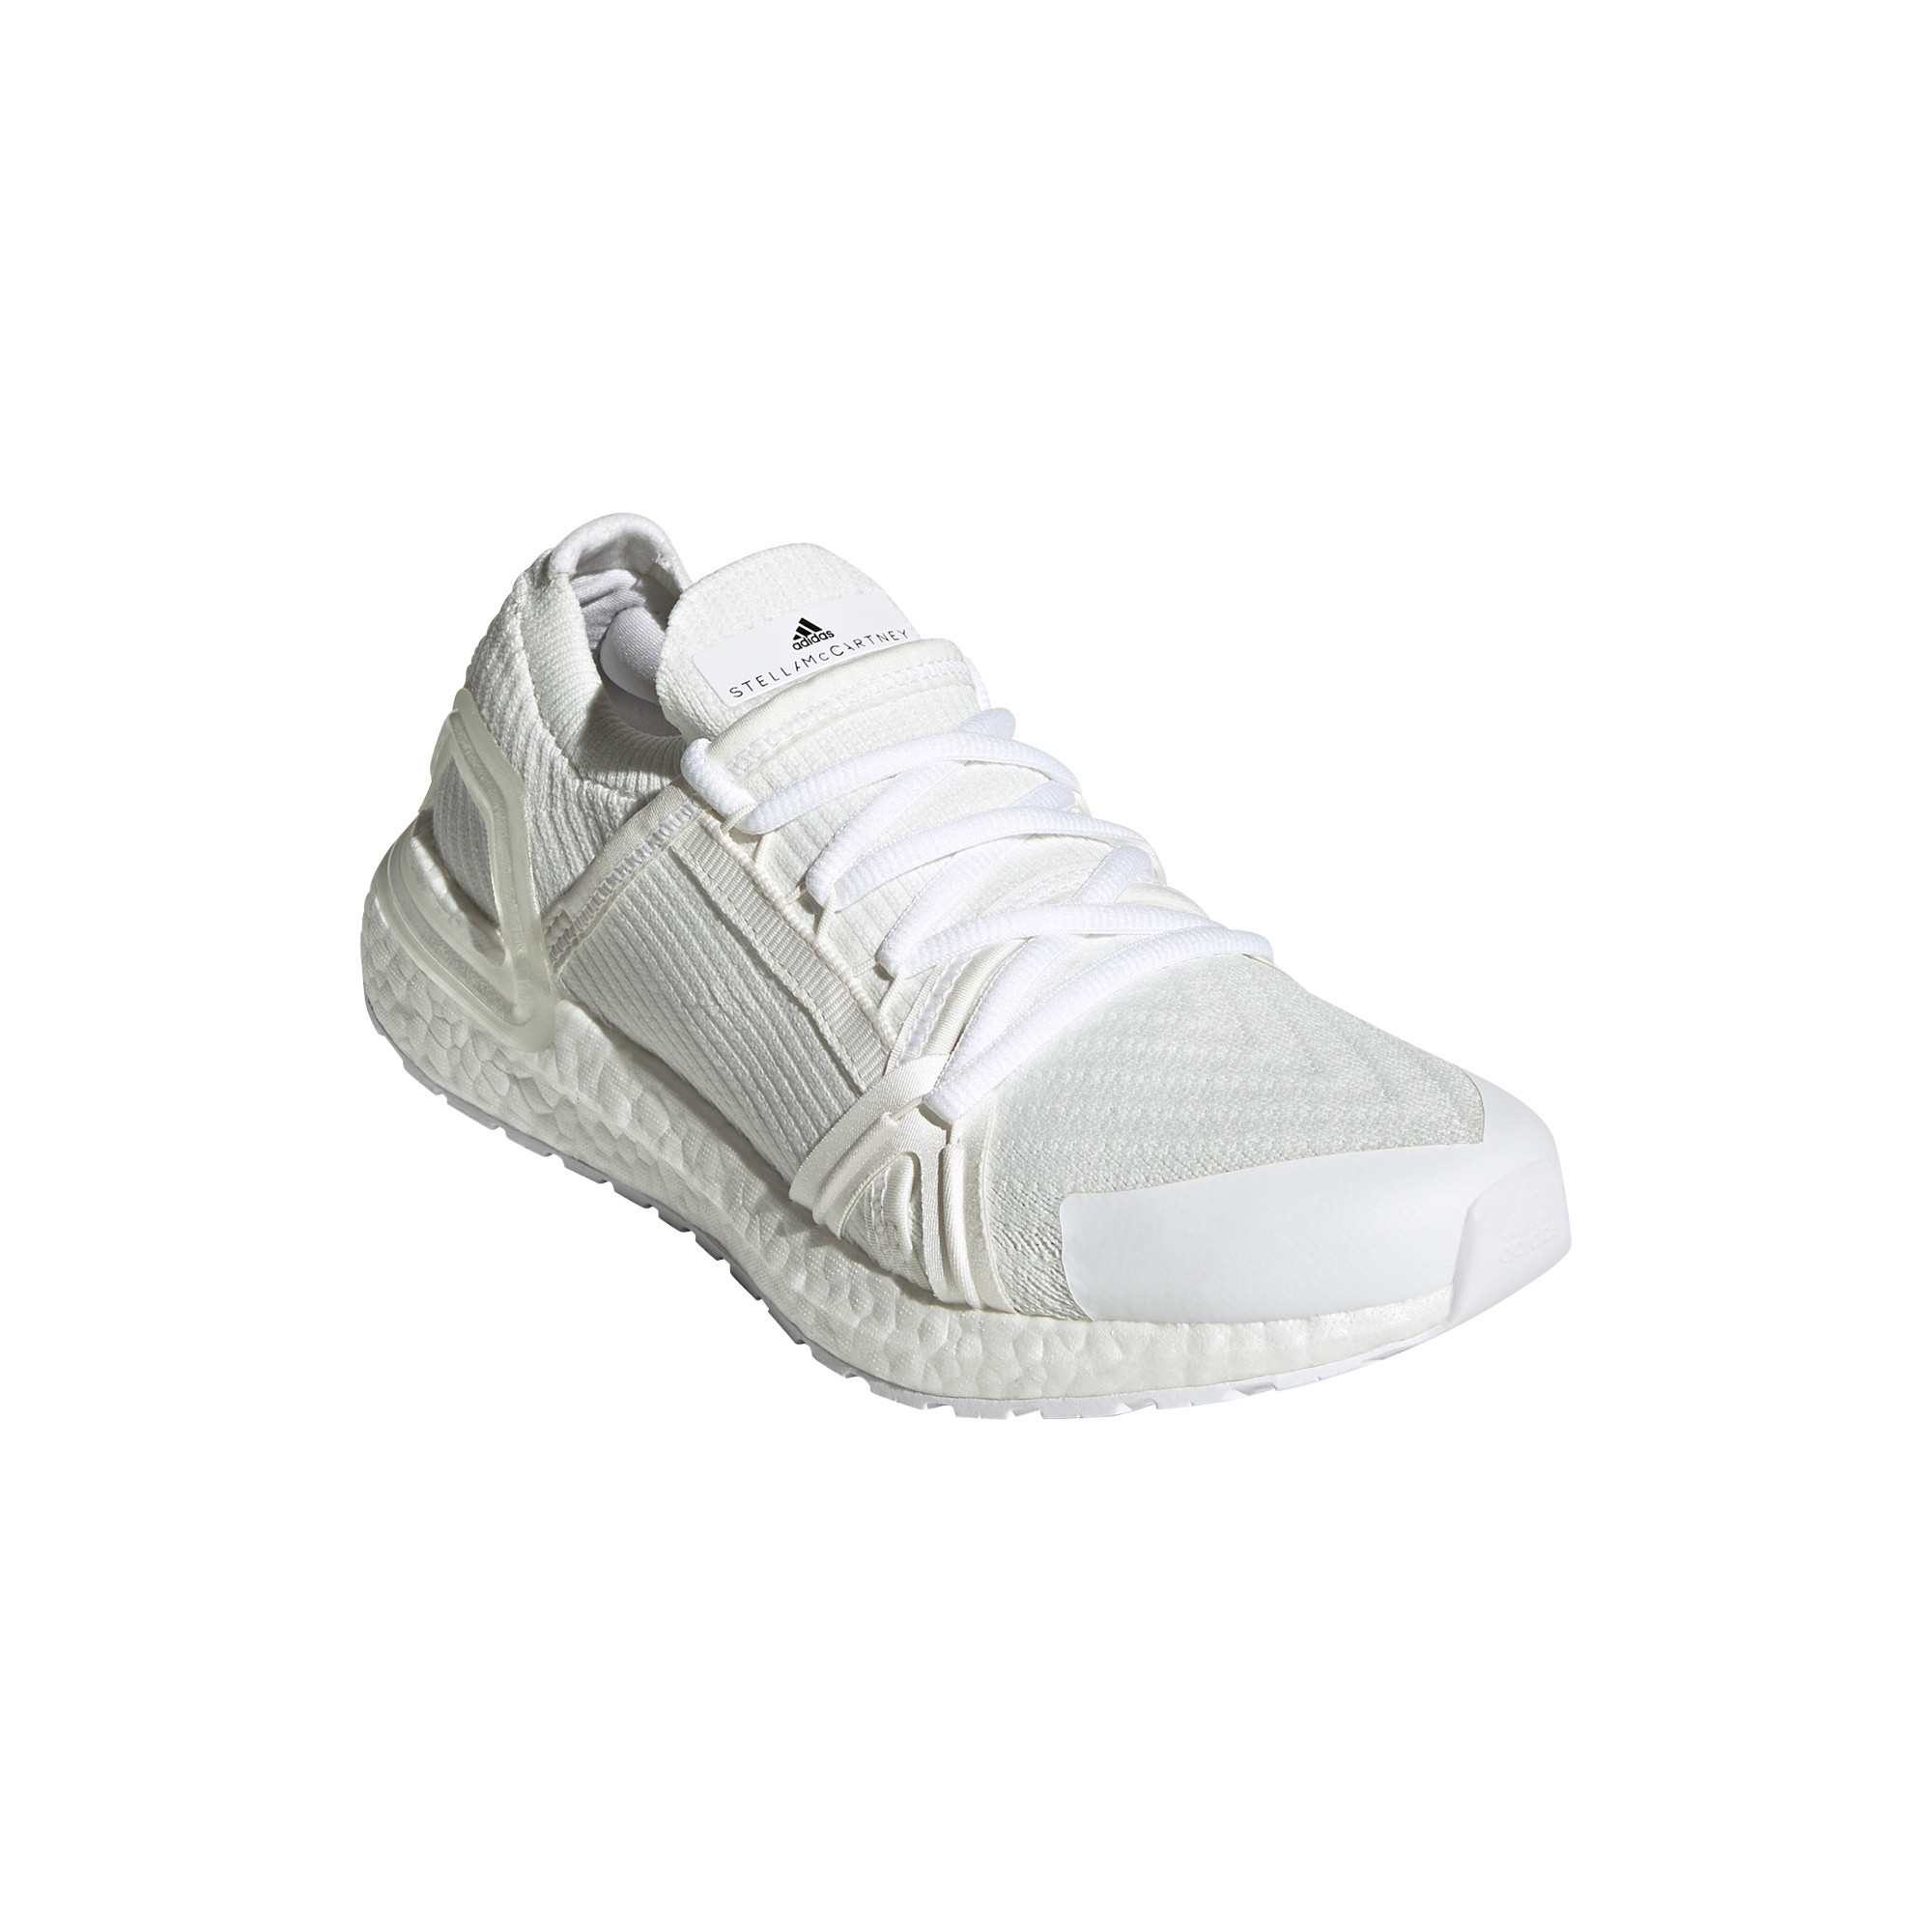 Trainers Ultraboost 20 No Dye Running, Bianco, large image number 0